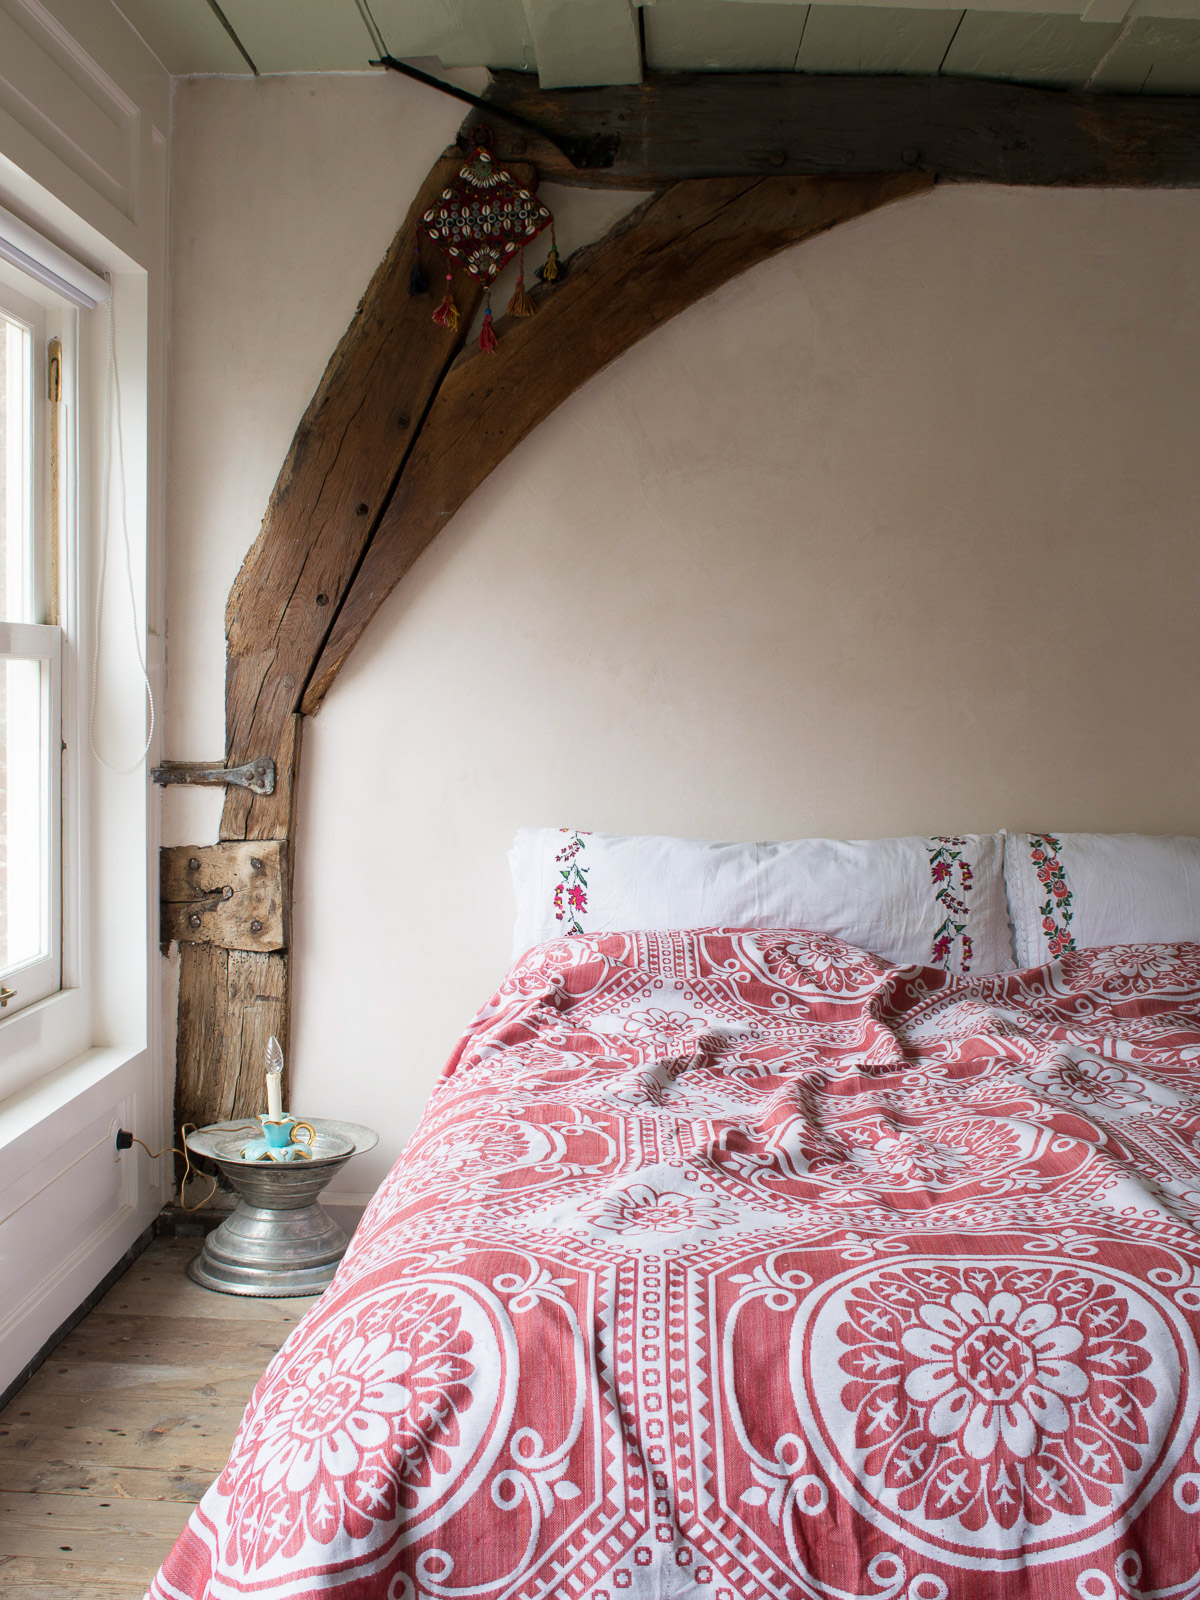 Bedspread With Flower Pattern Karo Red Bedspread With Floral Pattern Bedspreads Duvet Covers Ottomania Nl Official Ottomania Site